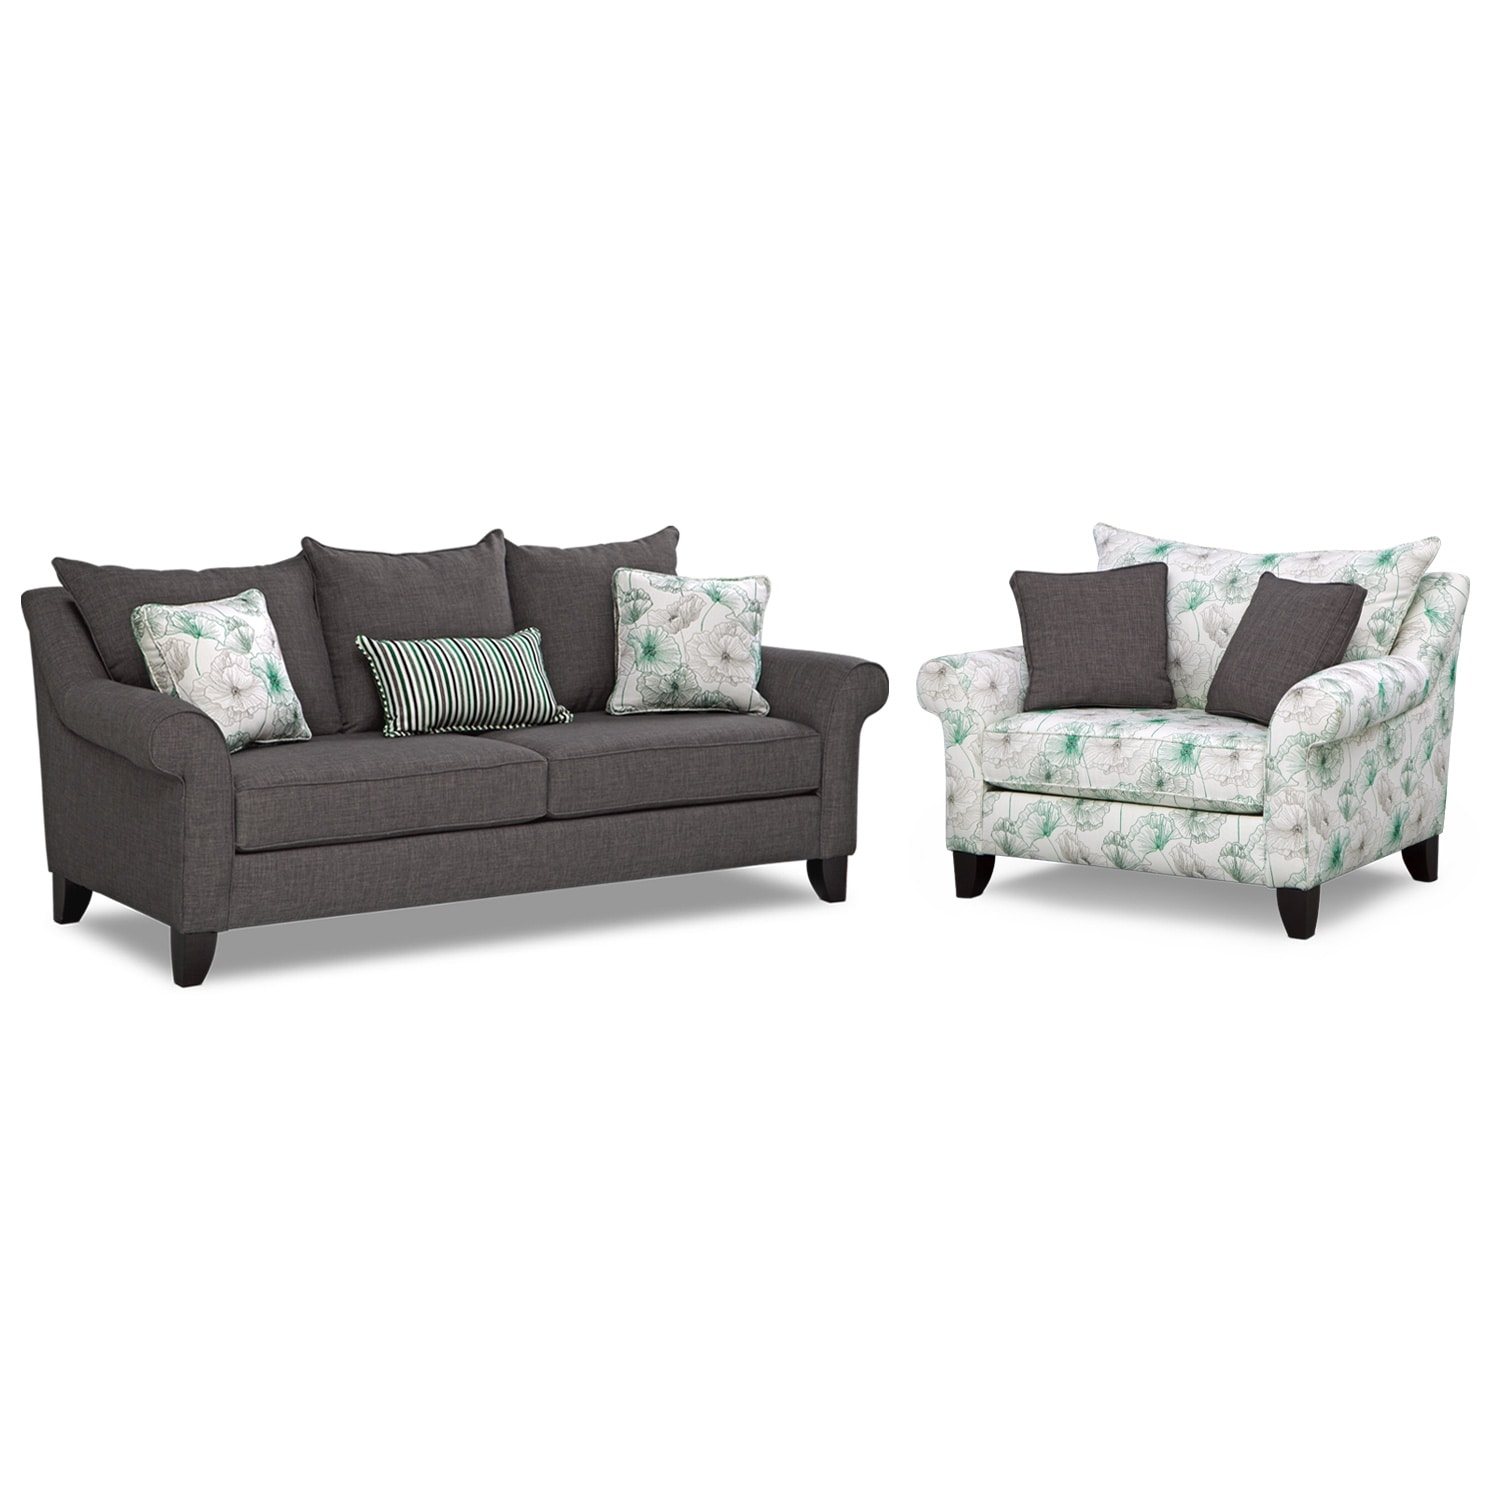 Living Room Furniture - Jasmine 2 Pc. Living Room w/ Chair and a Half